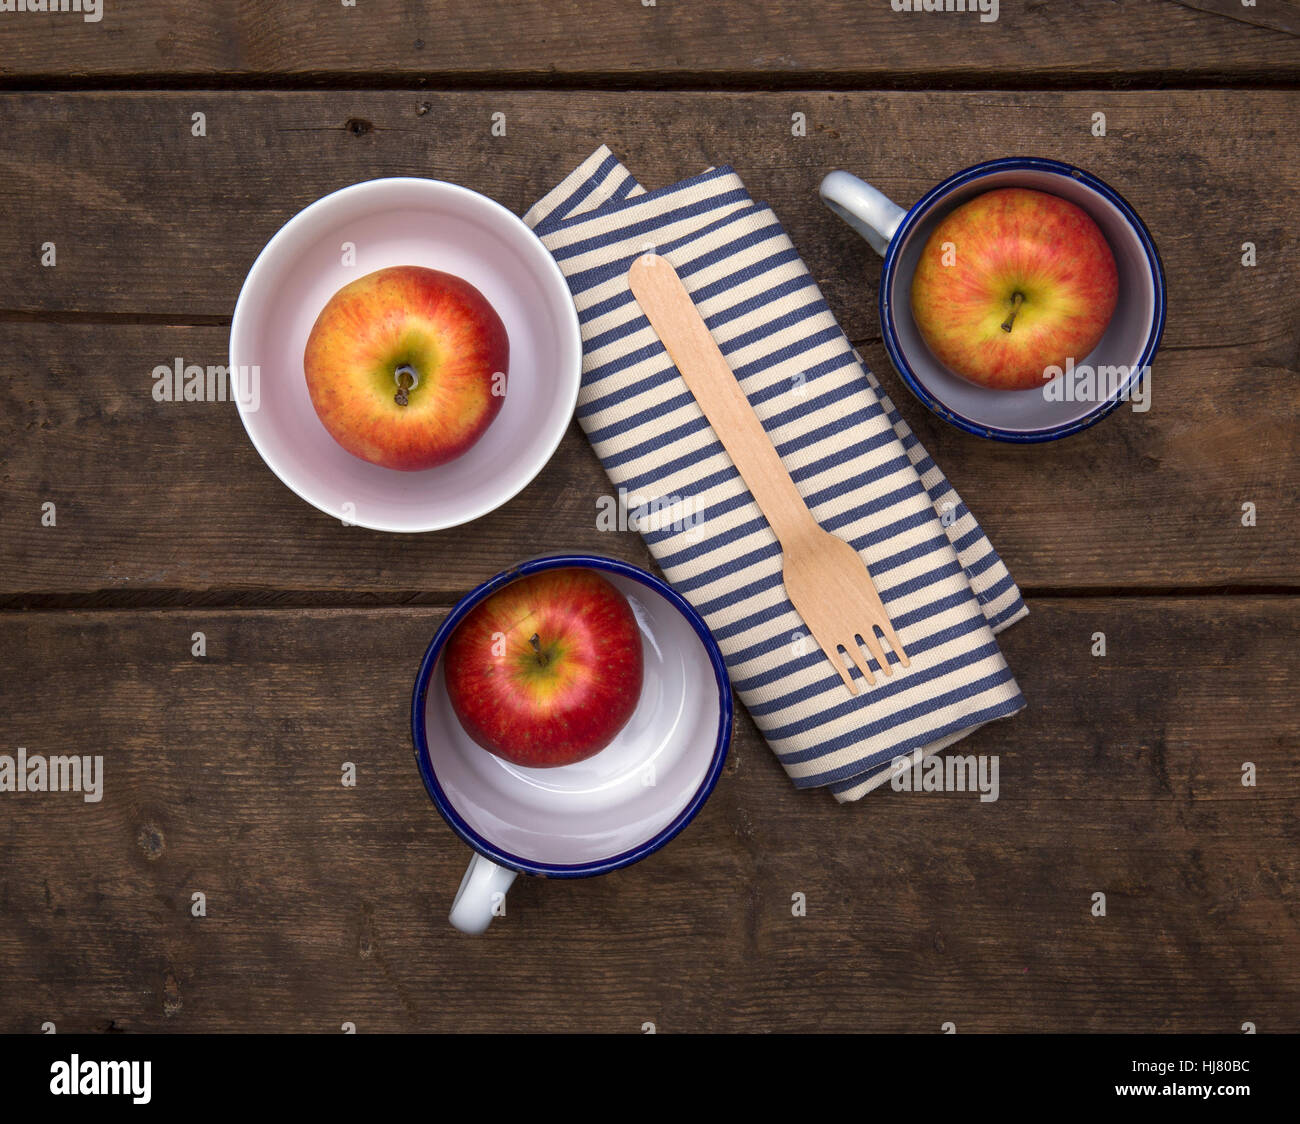 Apples in Bowls with fork and napkin on a rustic wooden table - Stock Image